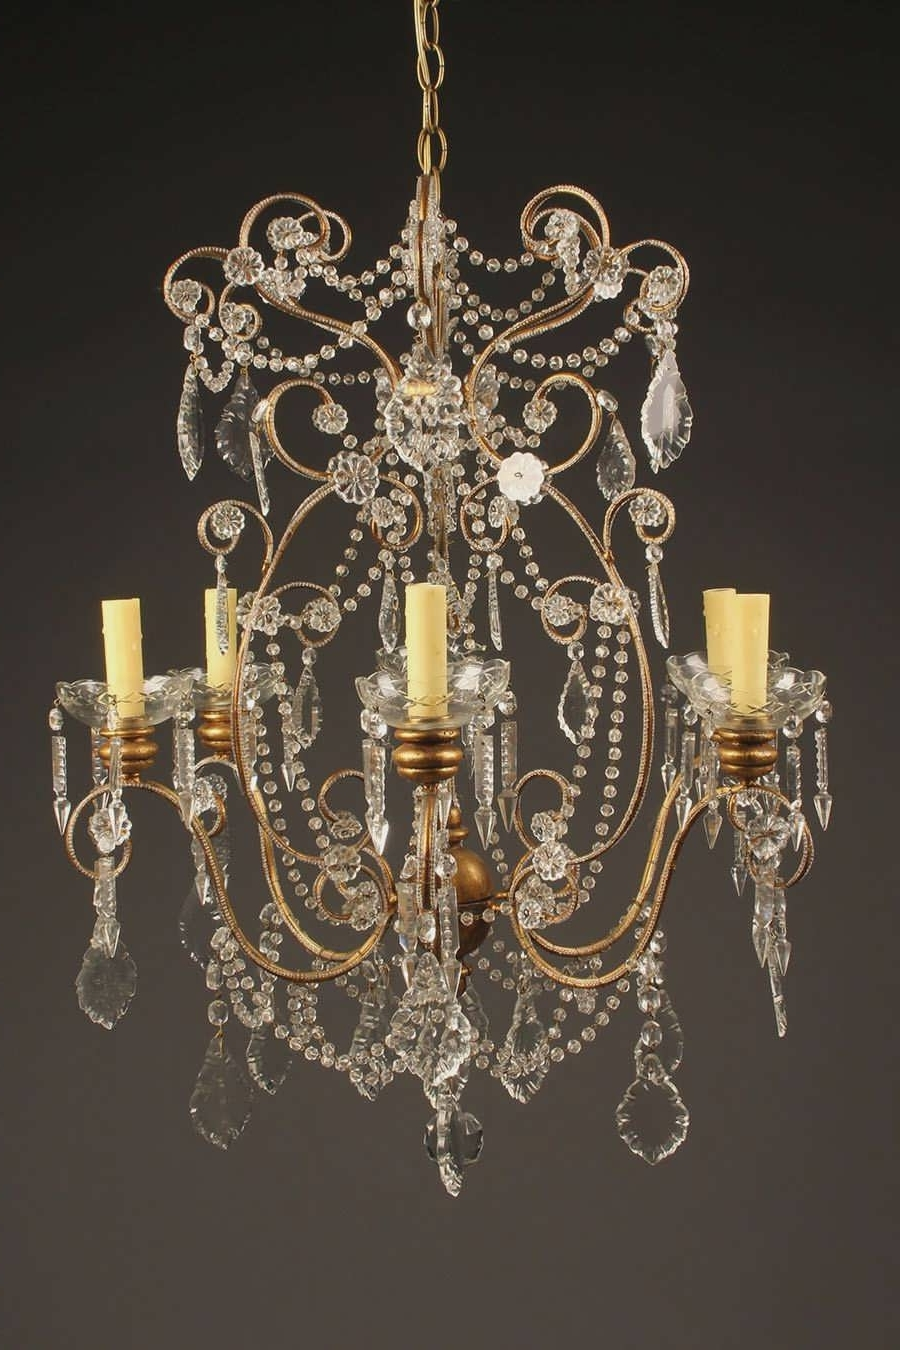 49 Examples Good Vintage Murano Glass Chandelier Ceiling Rustic For Most Up To Date Italian Chandelier Style (Gallery 17 of 20)